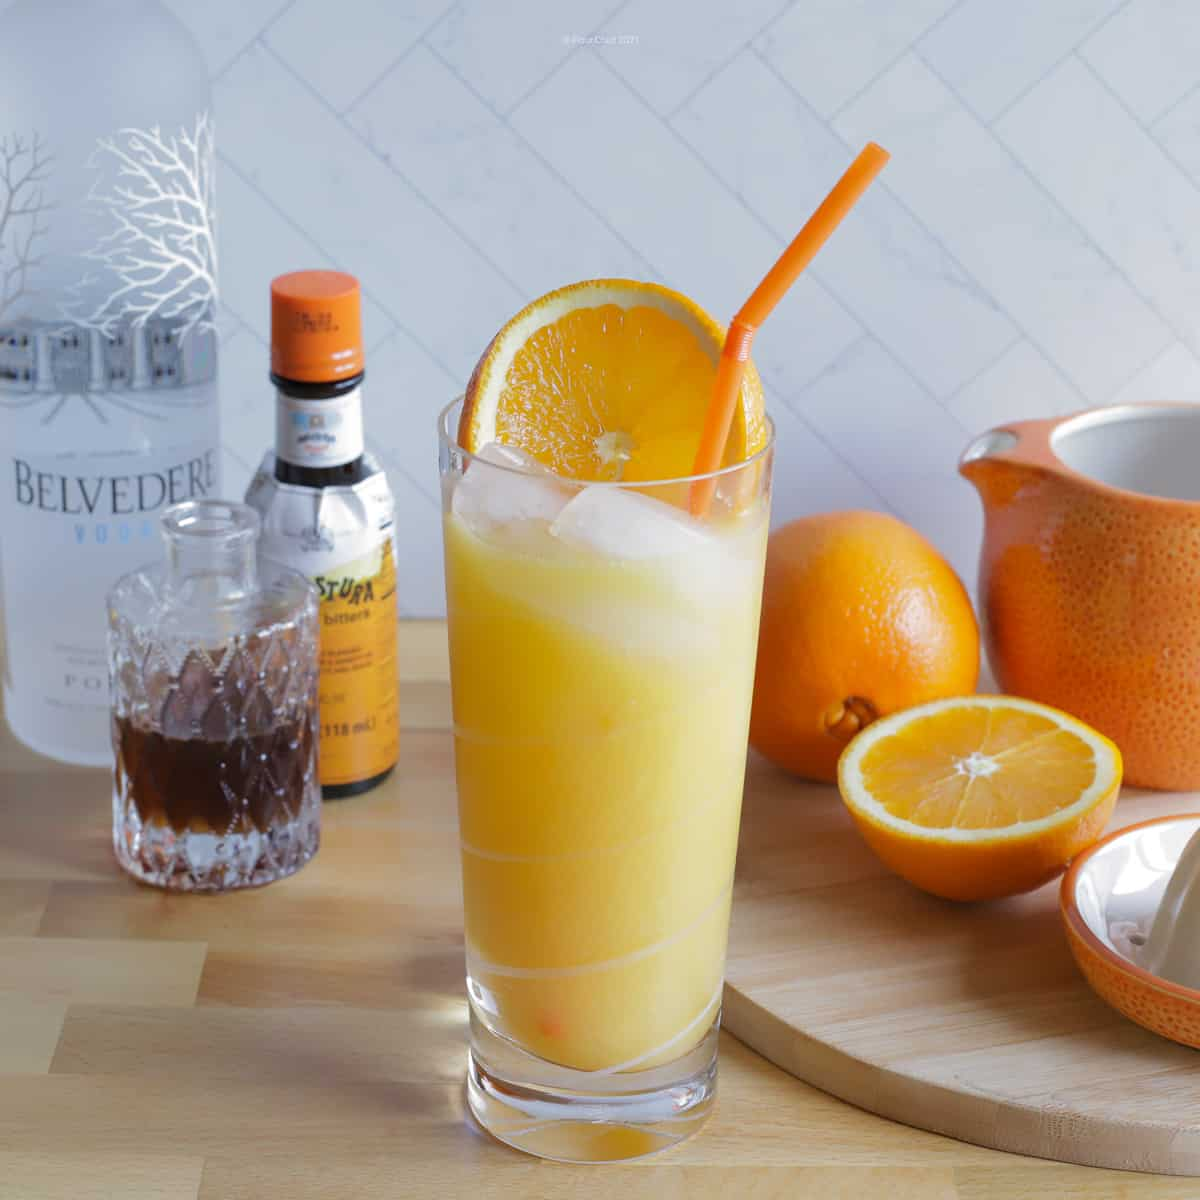 Screw driver cocktail in a tall glass with orange slice and orange straw